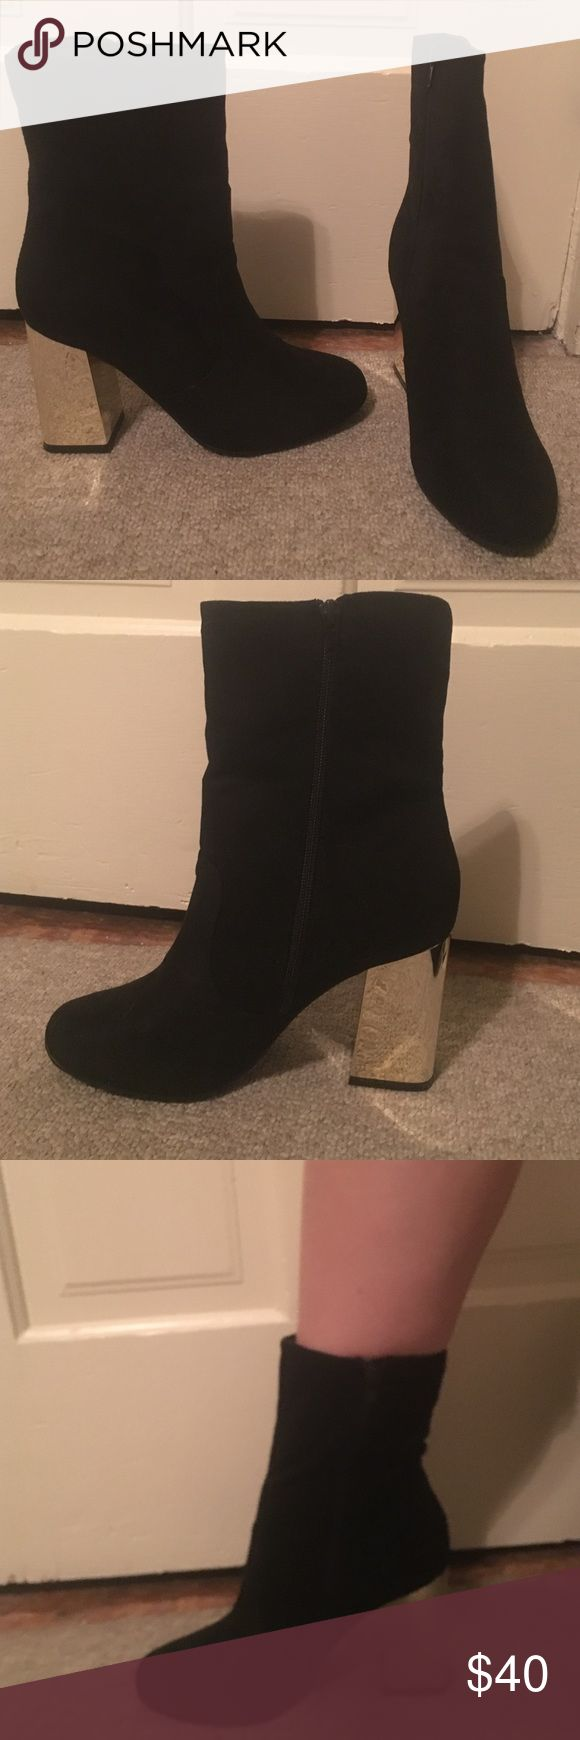 Black and gold sock bootie I'm selling never worn, still in the box black and gold sock booties. I bought two on accident. Heel is 3.75 inches size US9. British brand, boohoo. No offers, trying to get my money back. Boohoo Shoes Ankle Boots & Booties